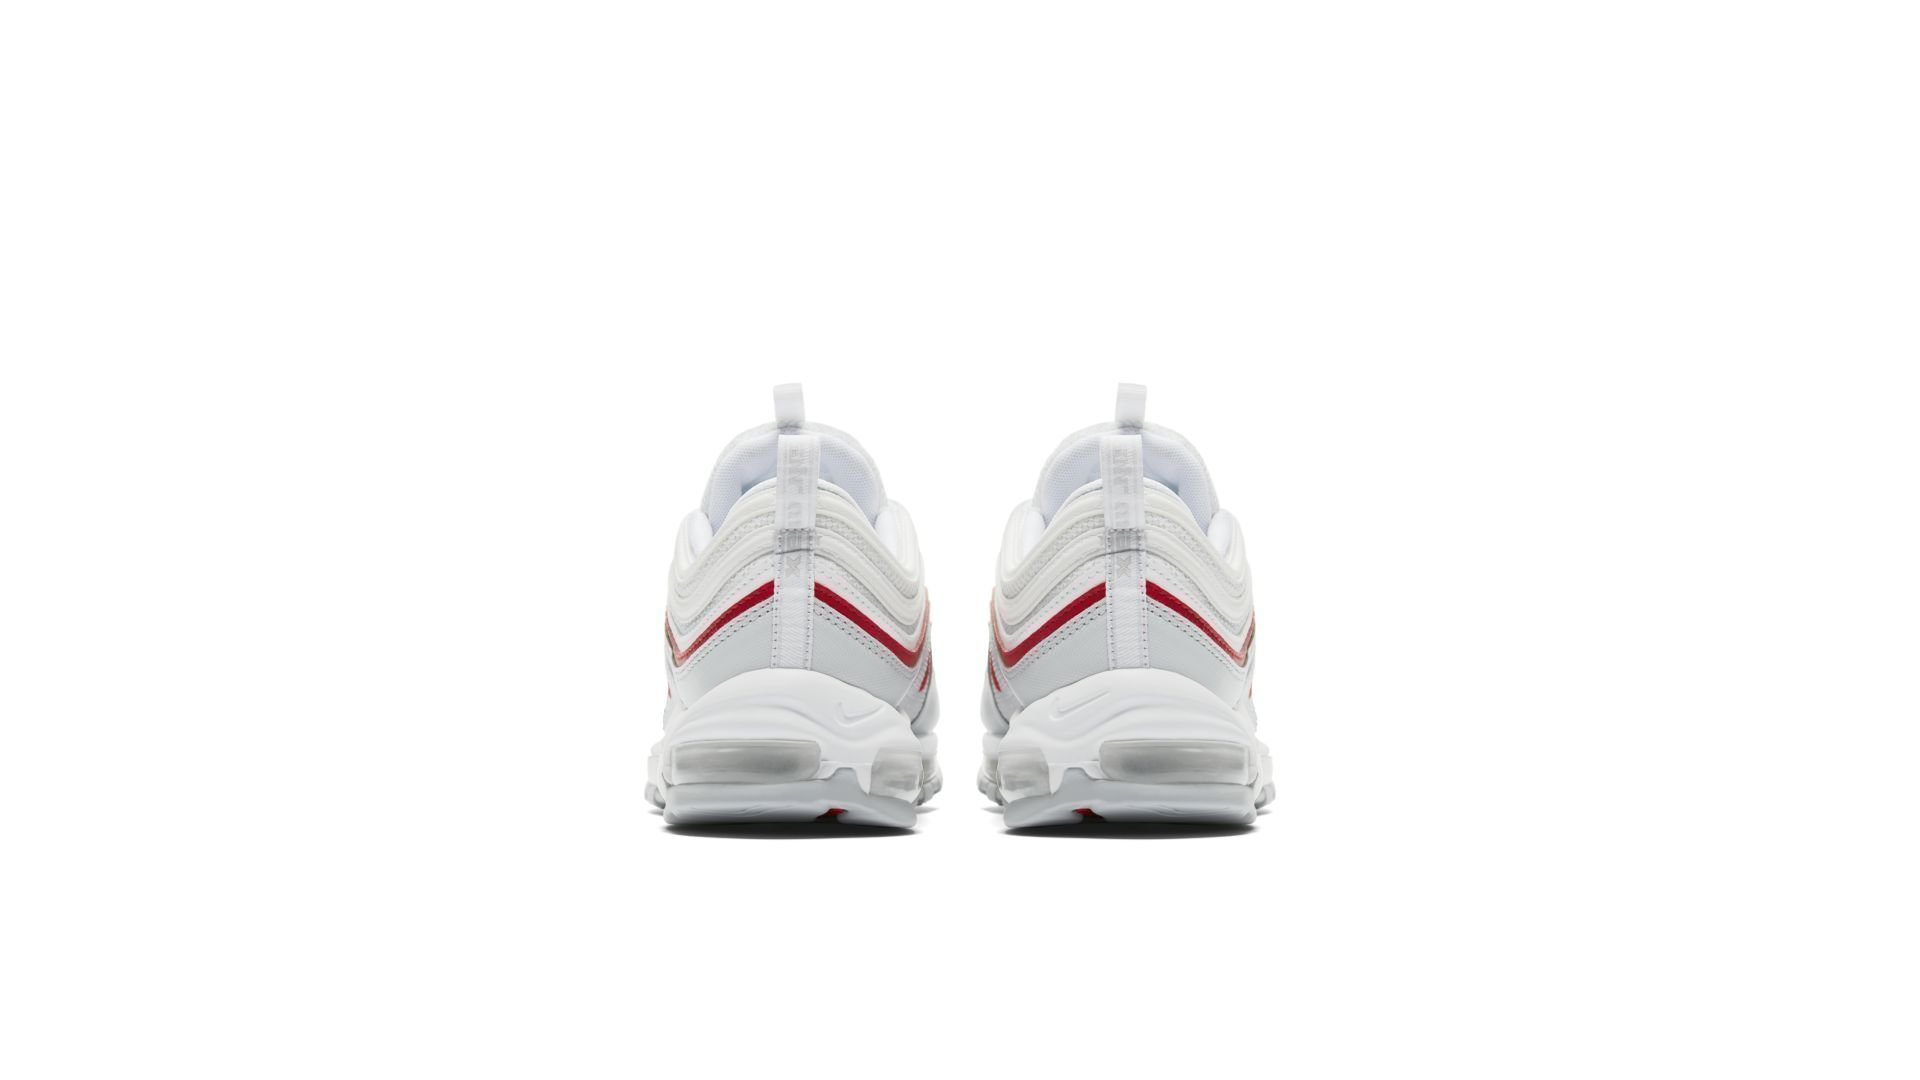 Nike Air Max 97 OG 'Pure Platinum/University Red' (AR5531-002)